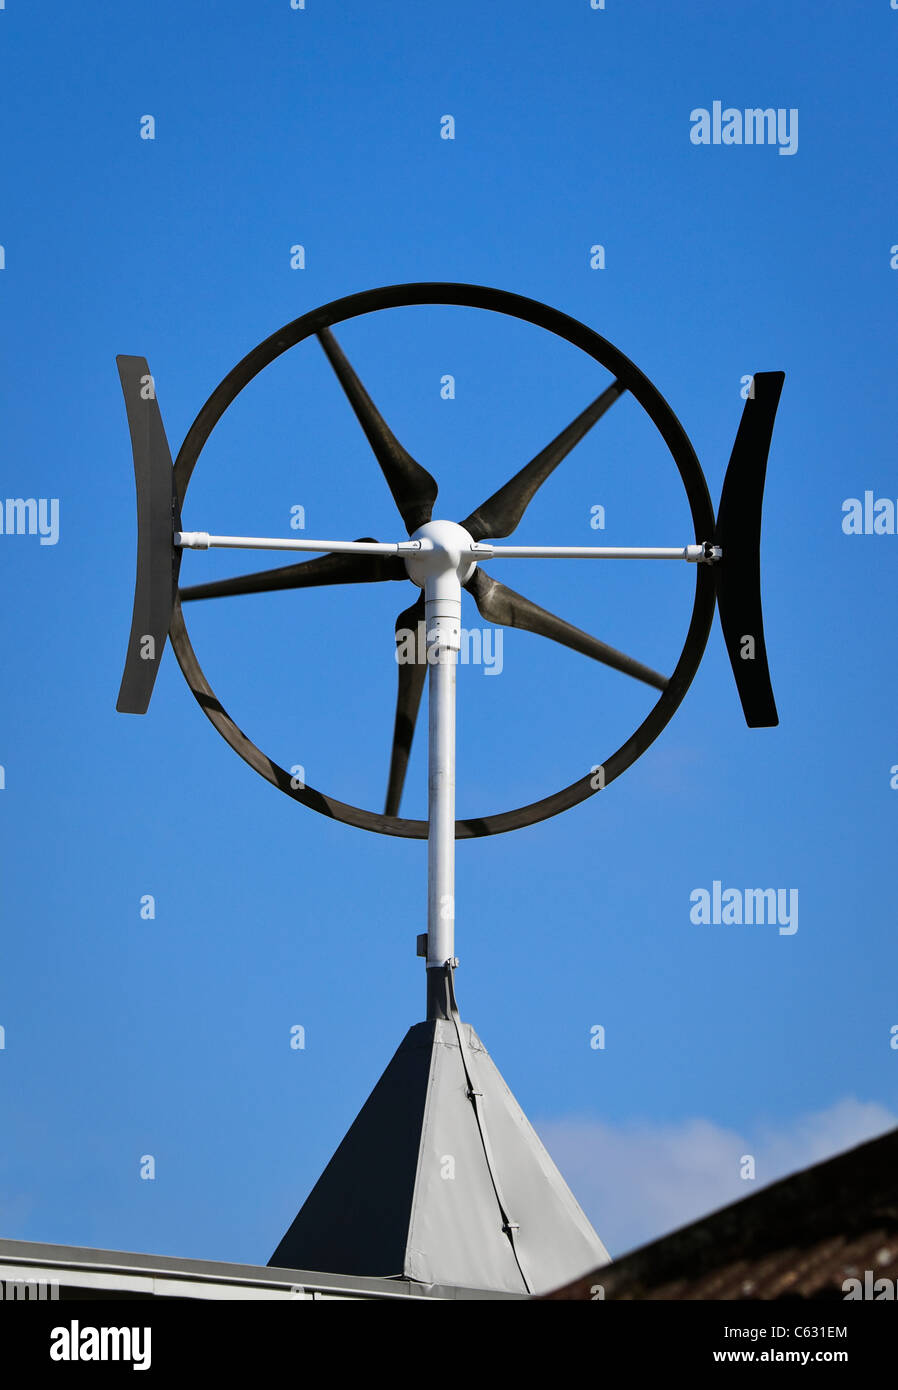 A roof mounted wind turbine in London, England - Stock Image